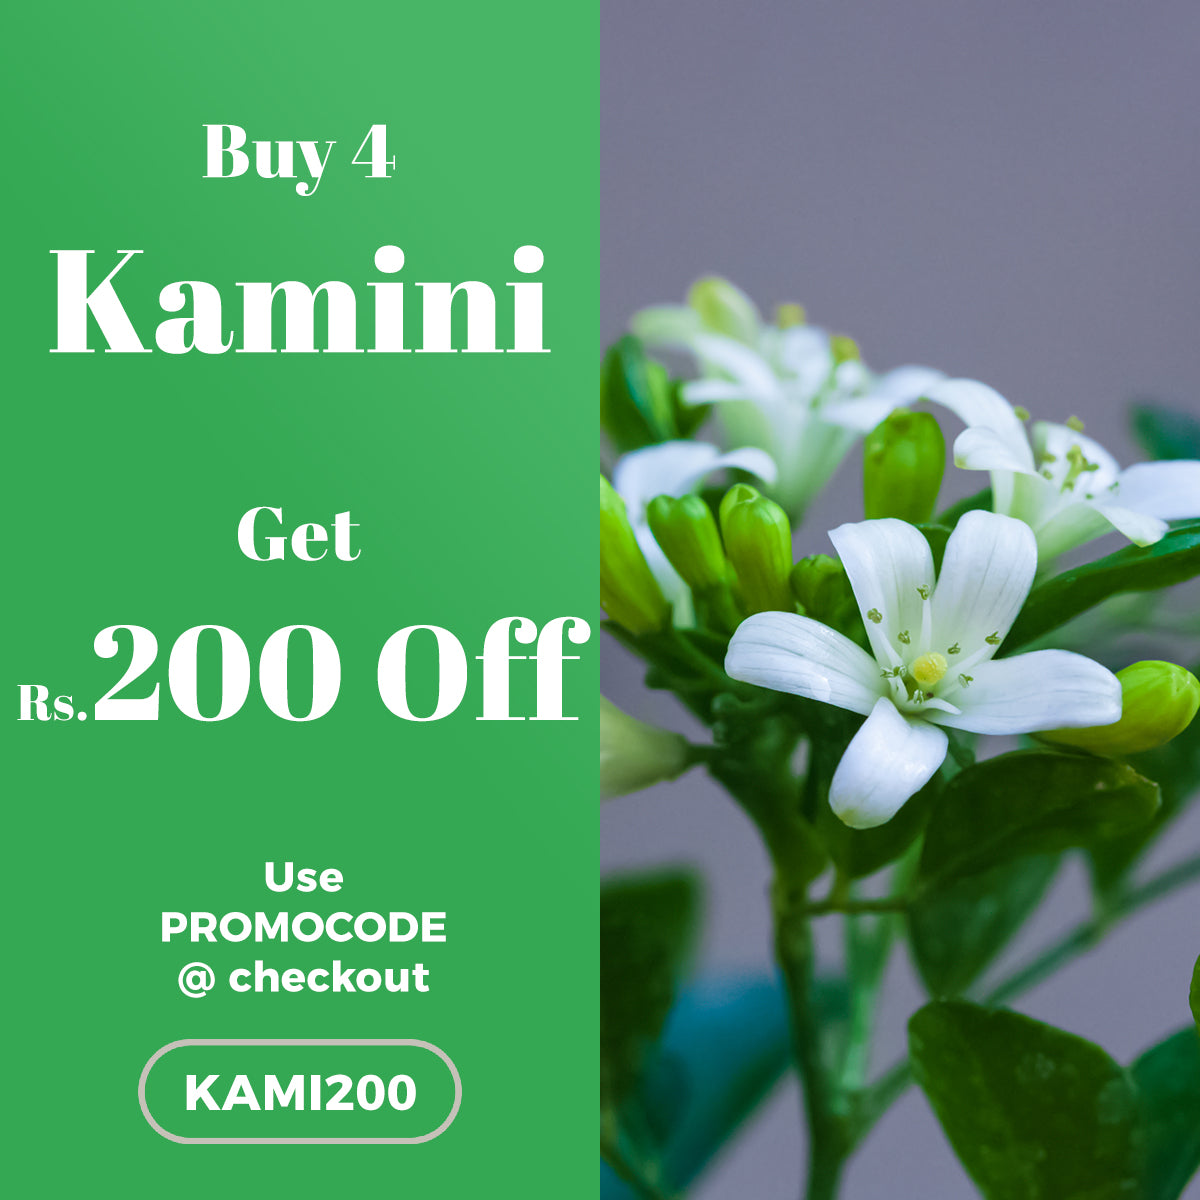 Buy 4 Kamini Plant and get Rs.200 OFF